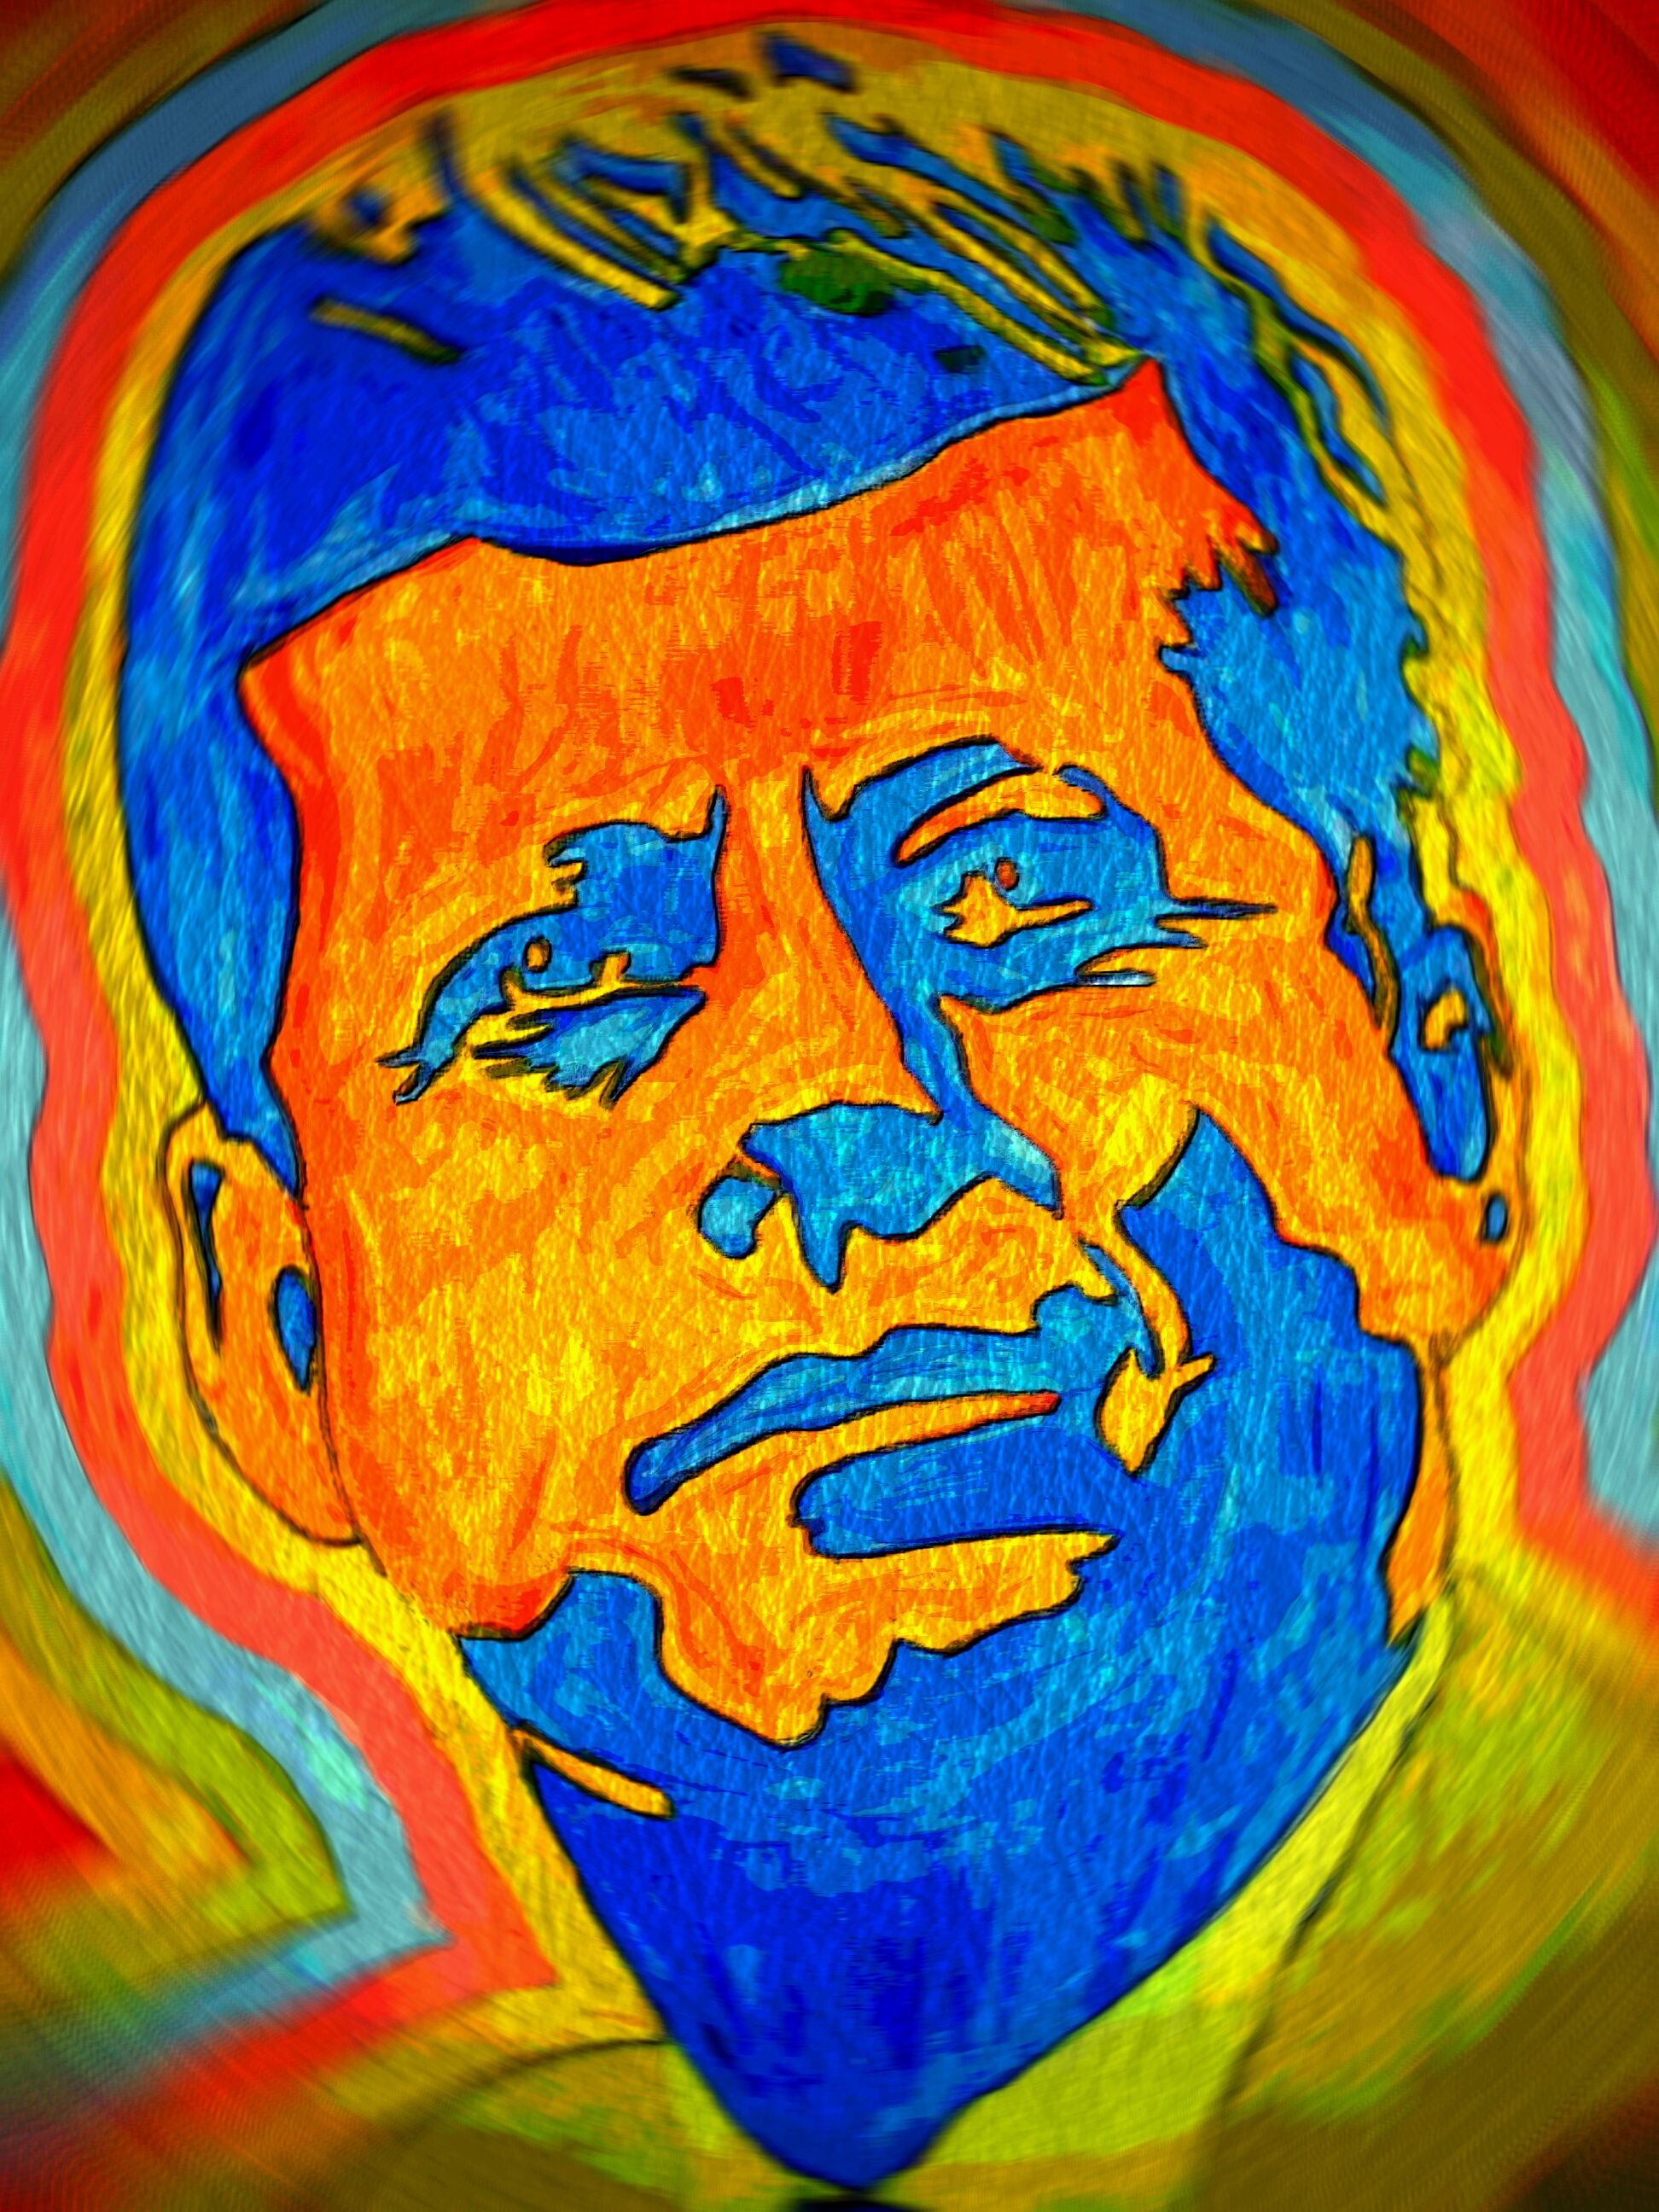 JFK painting bookcover 2013-06-20_19-18-56.jpeg